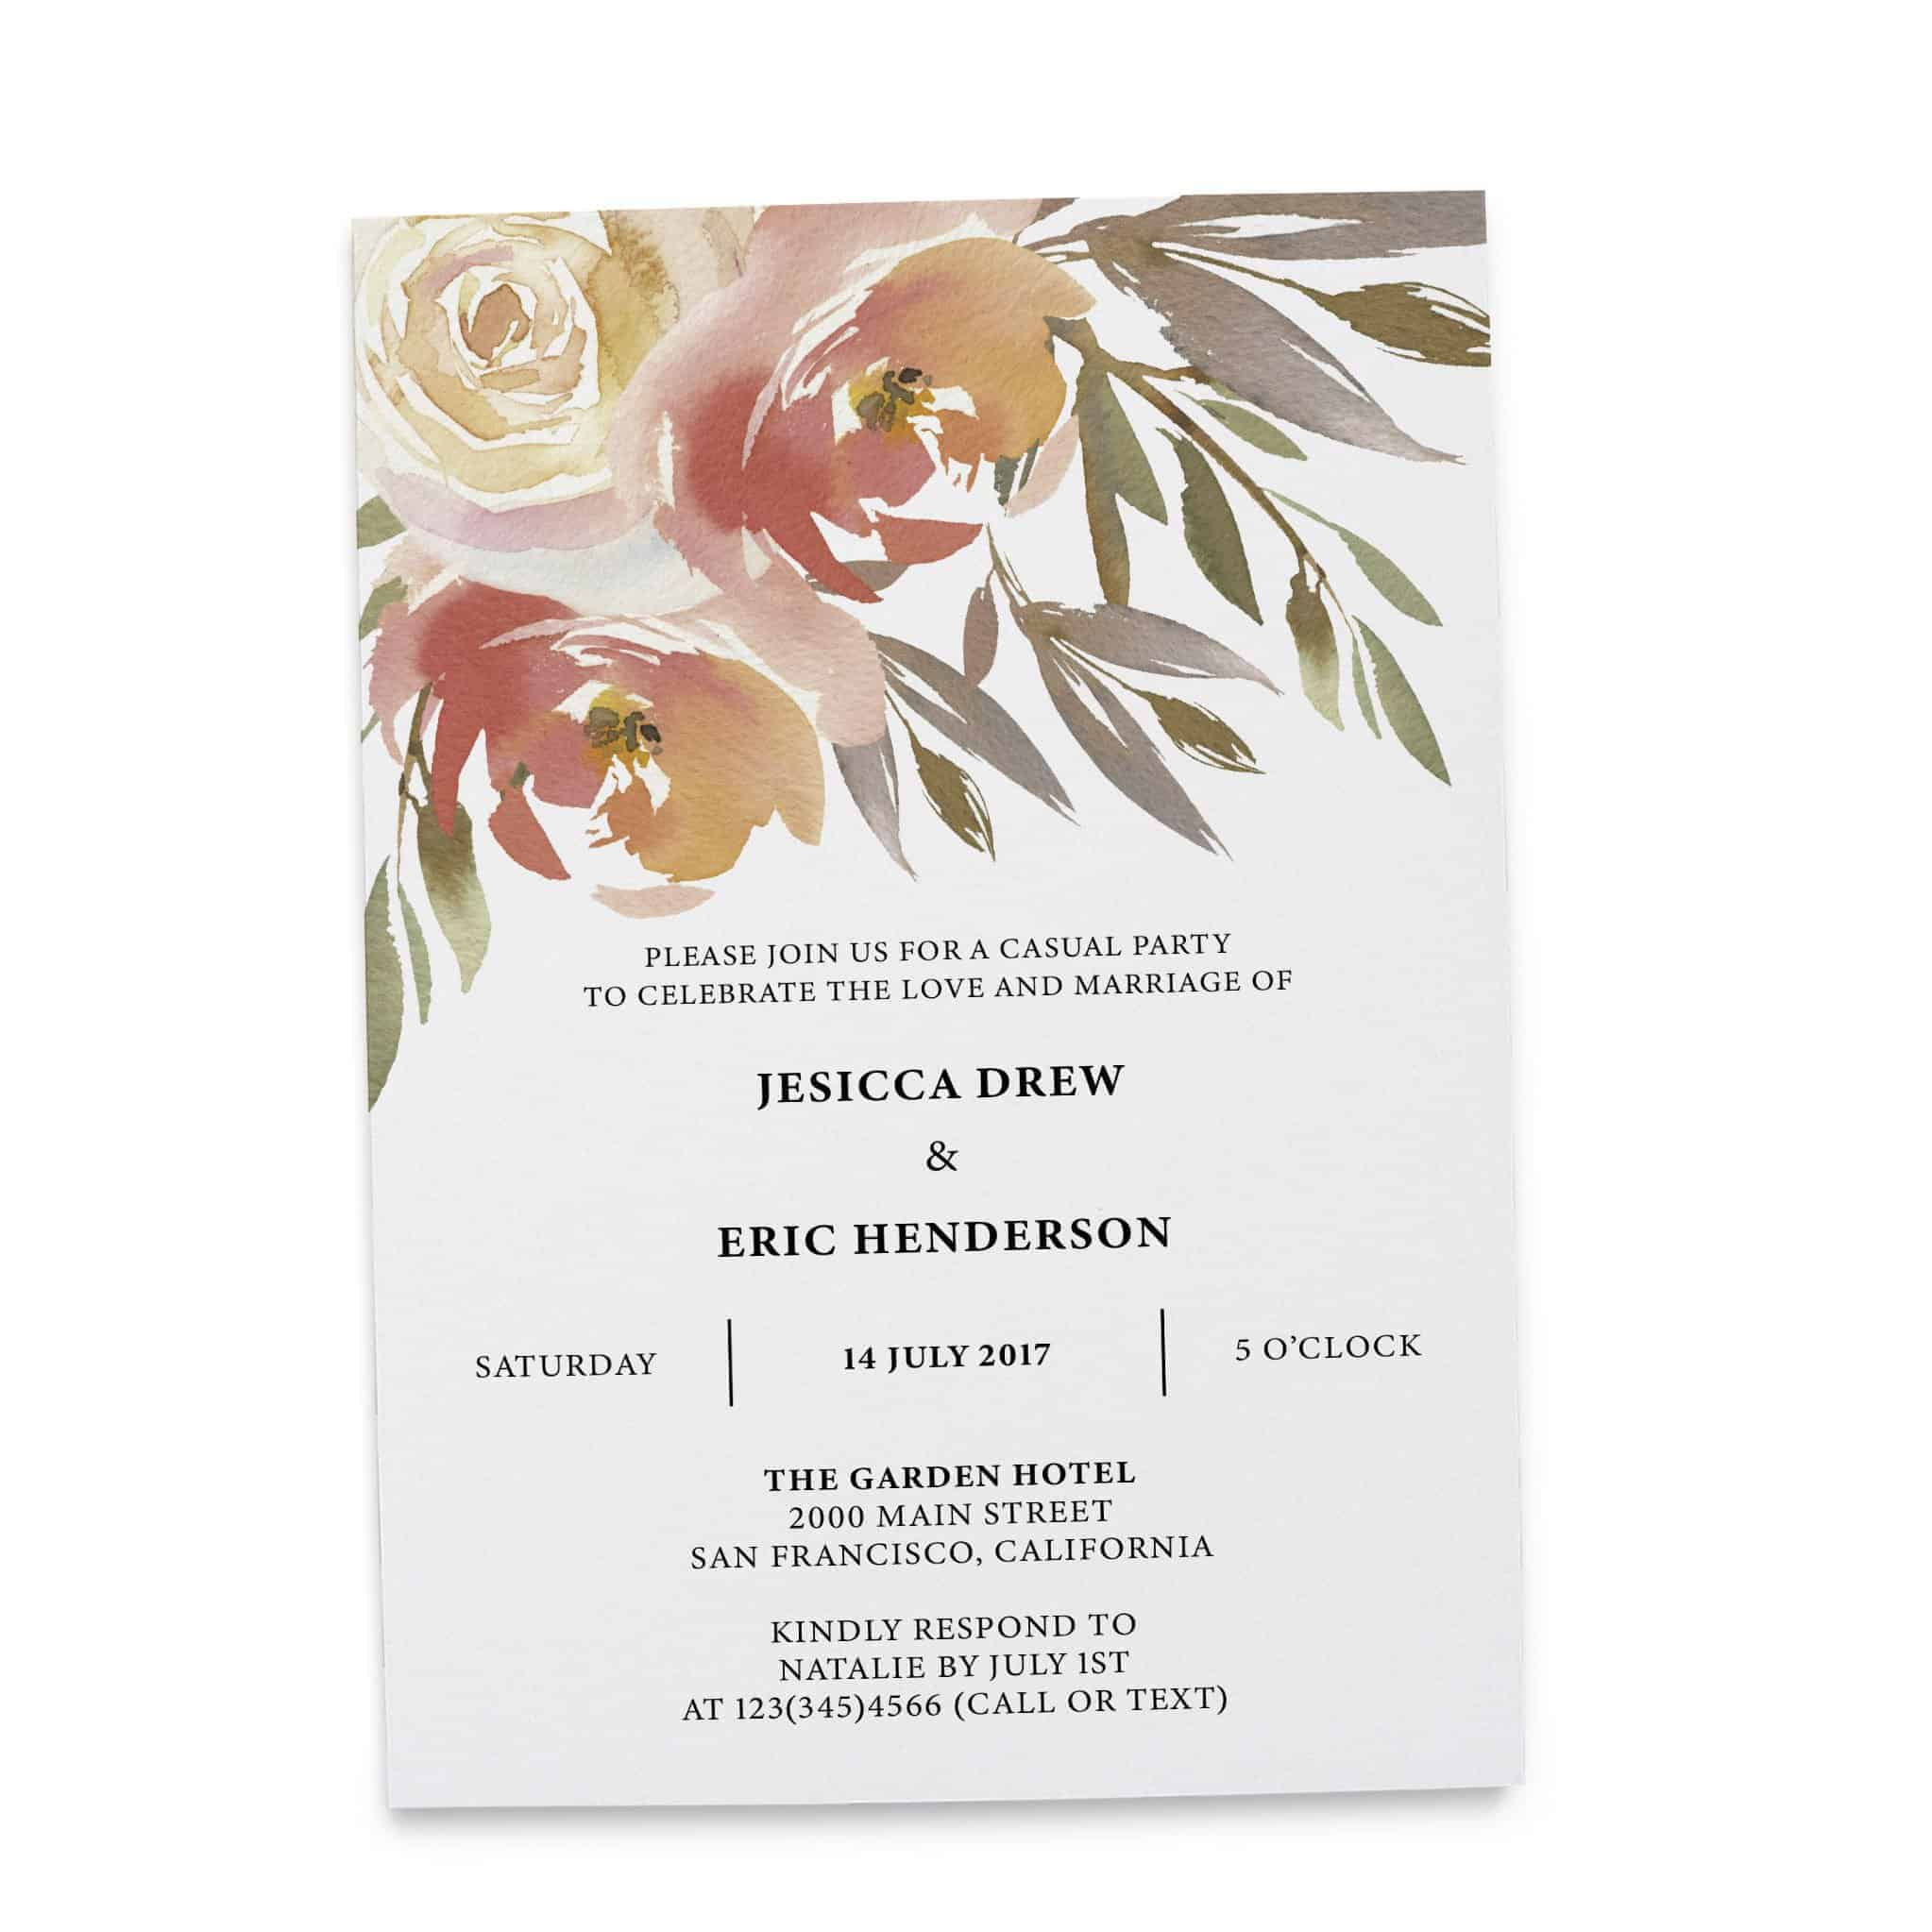 Elopement Reception Invitation Cards, Wedding Reception Invitations, Floral Invitation Card- Gentle Watercolor Flowers Design